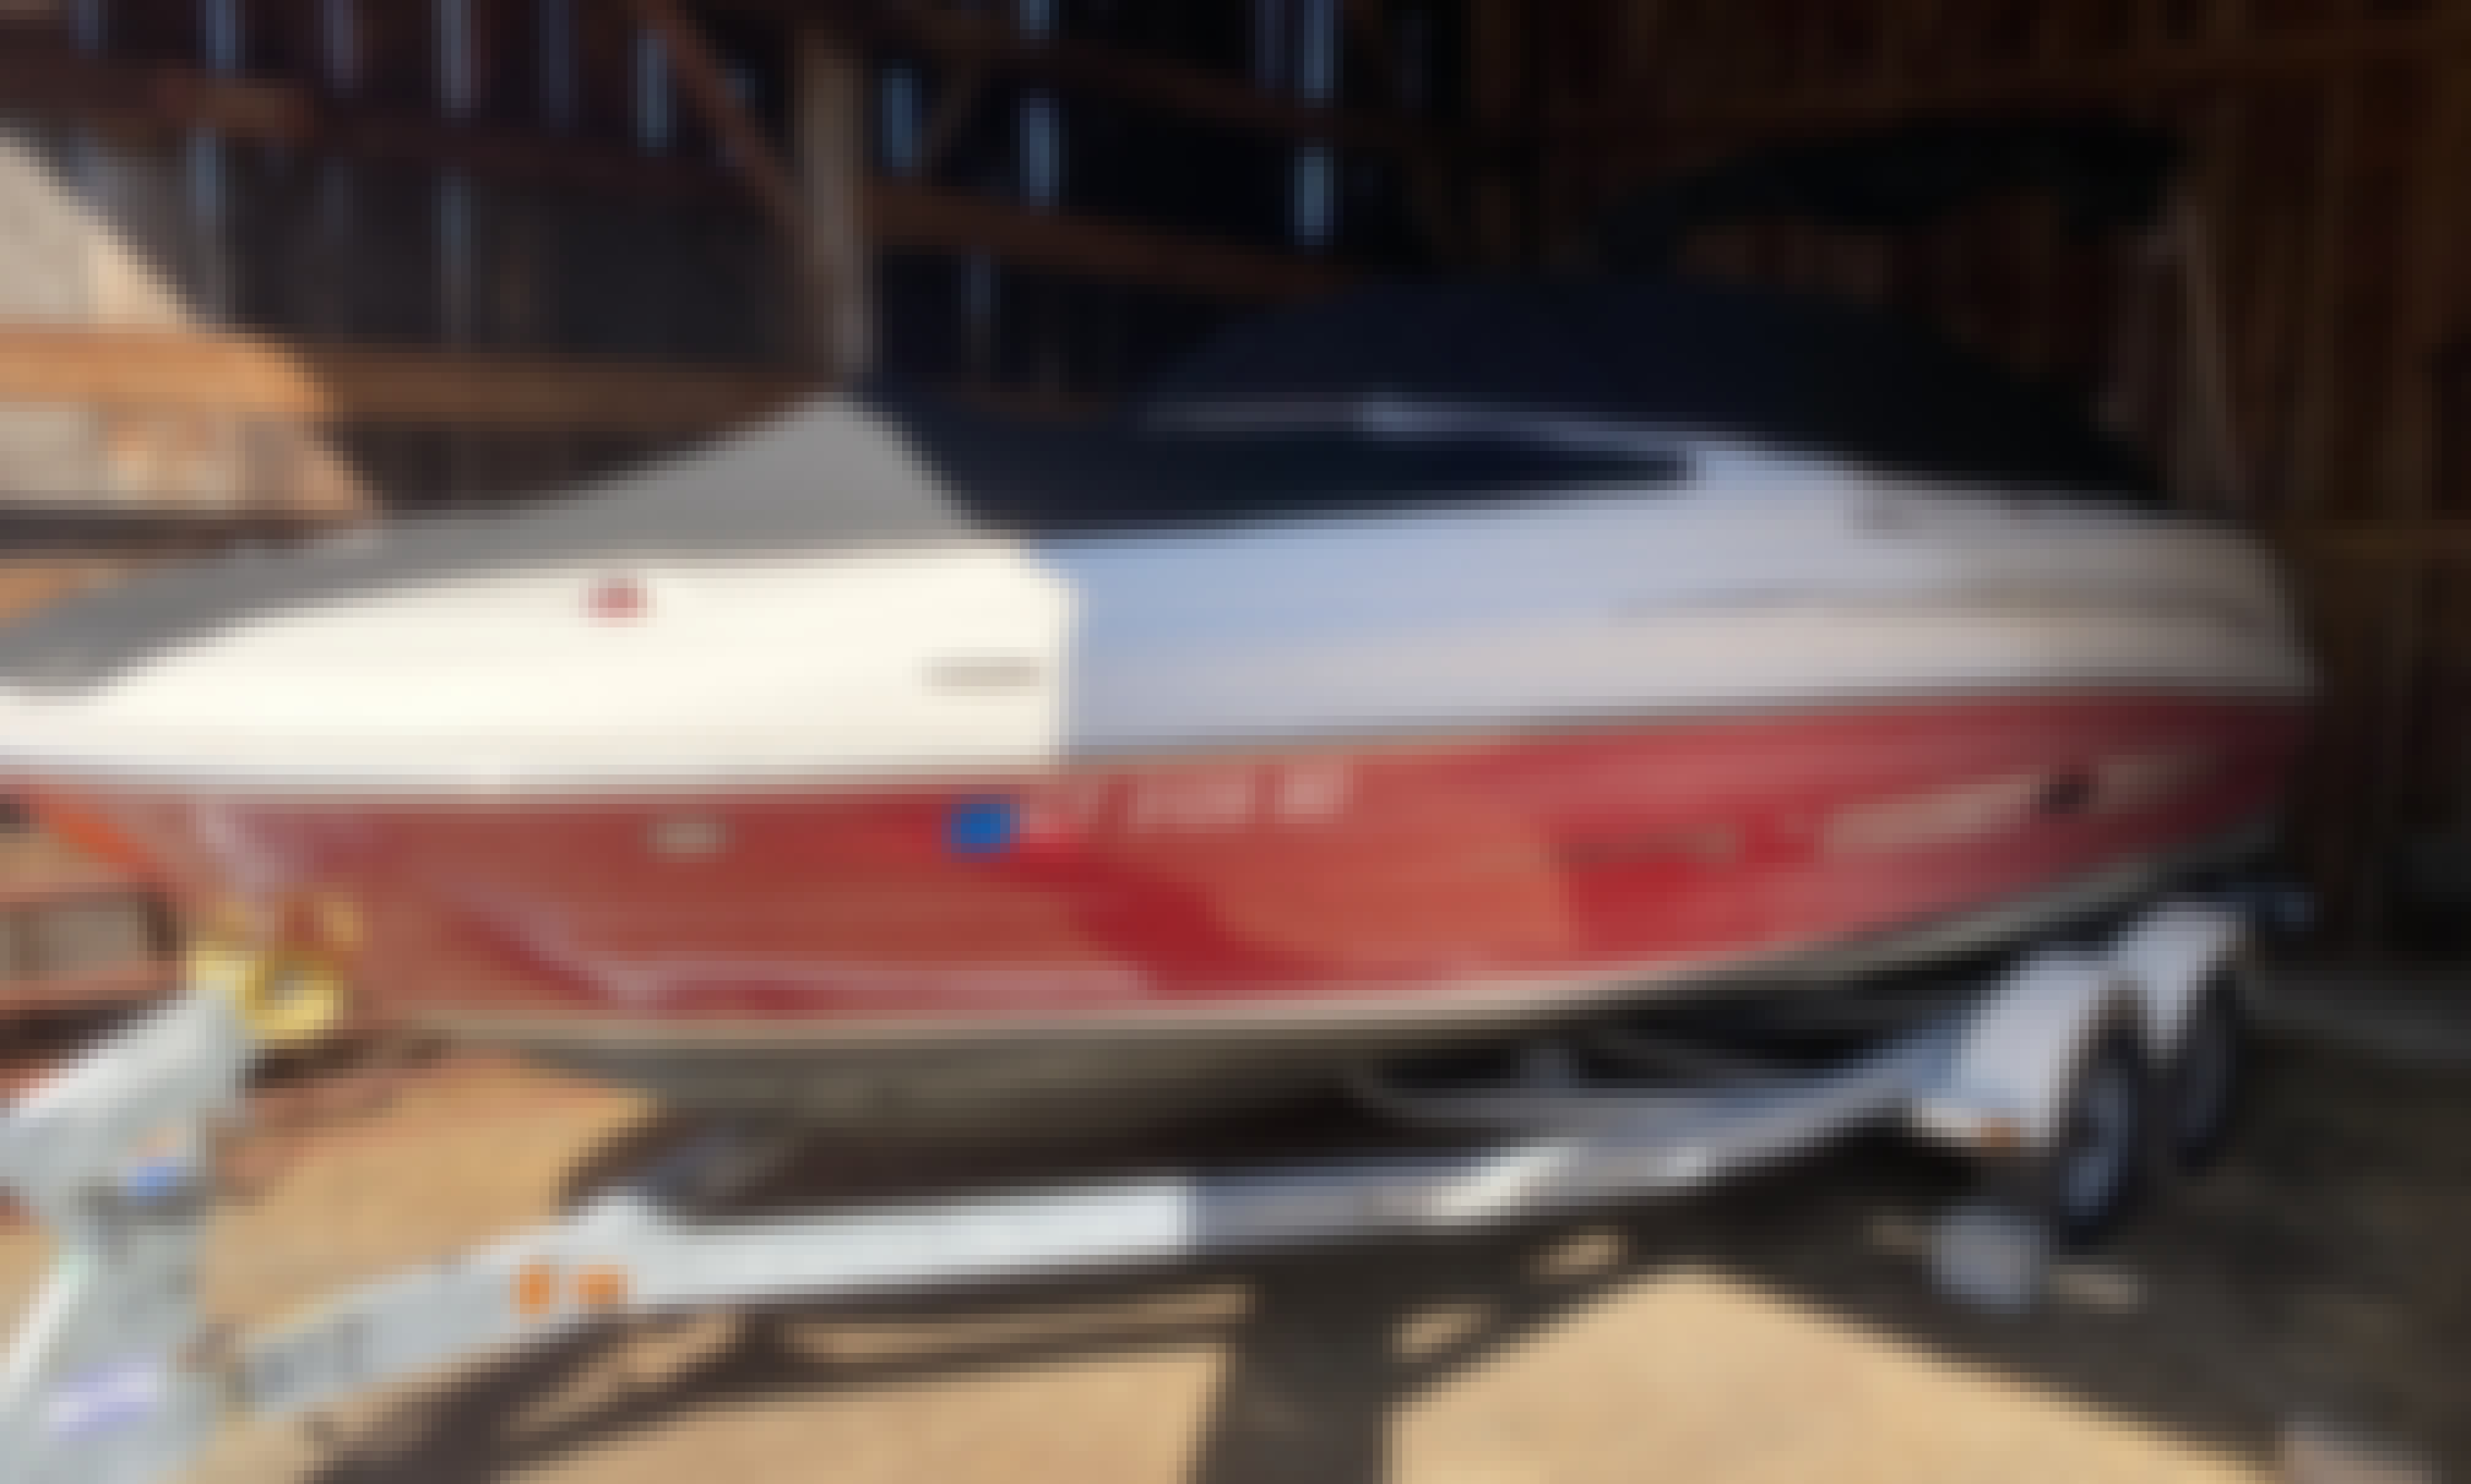 20ft Sea Ray Sundeck Delivered to You